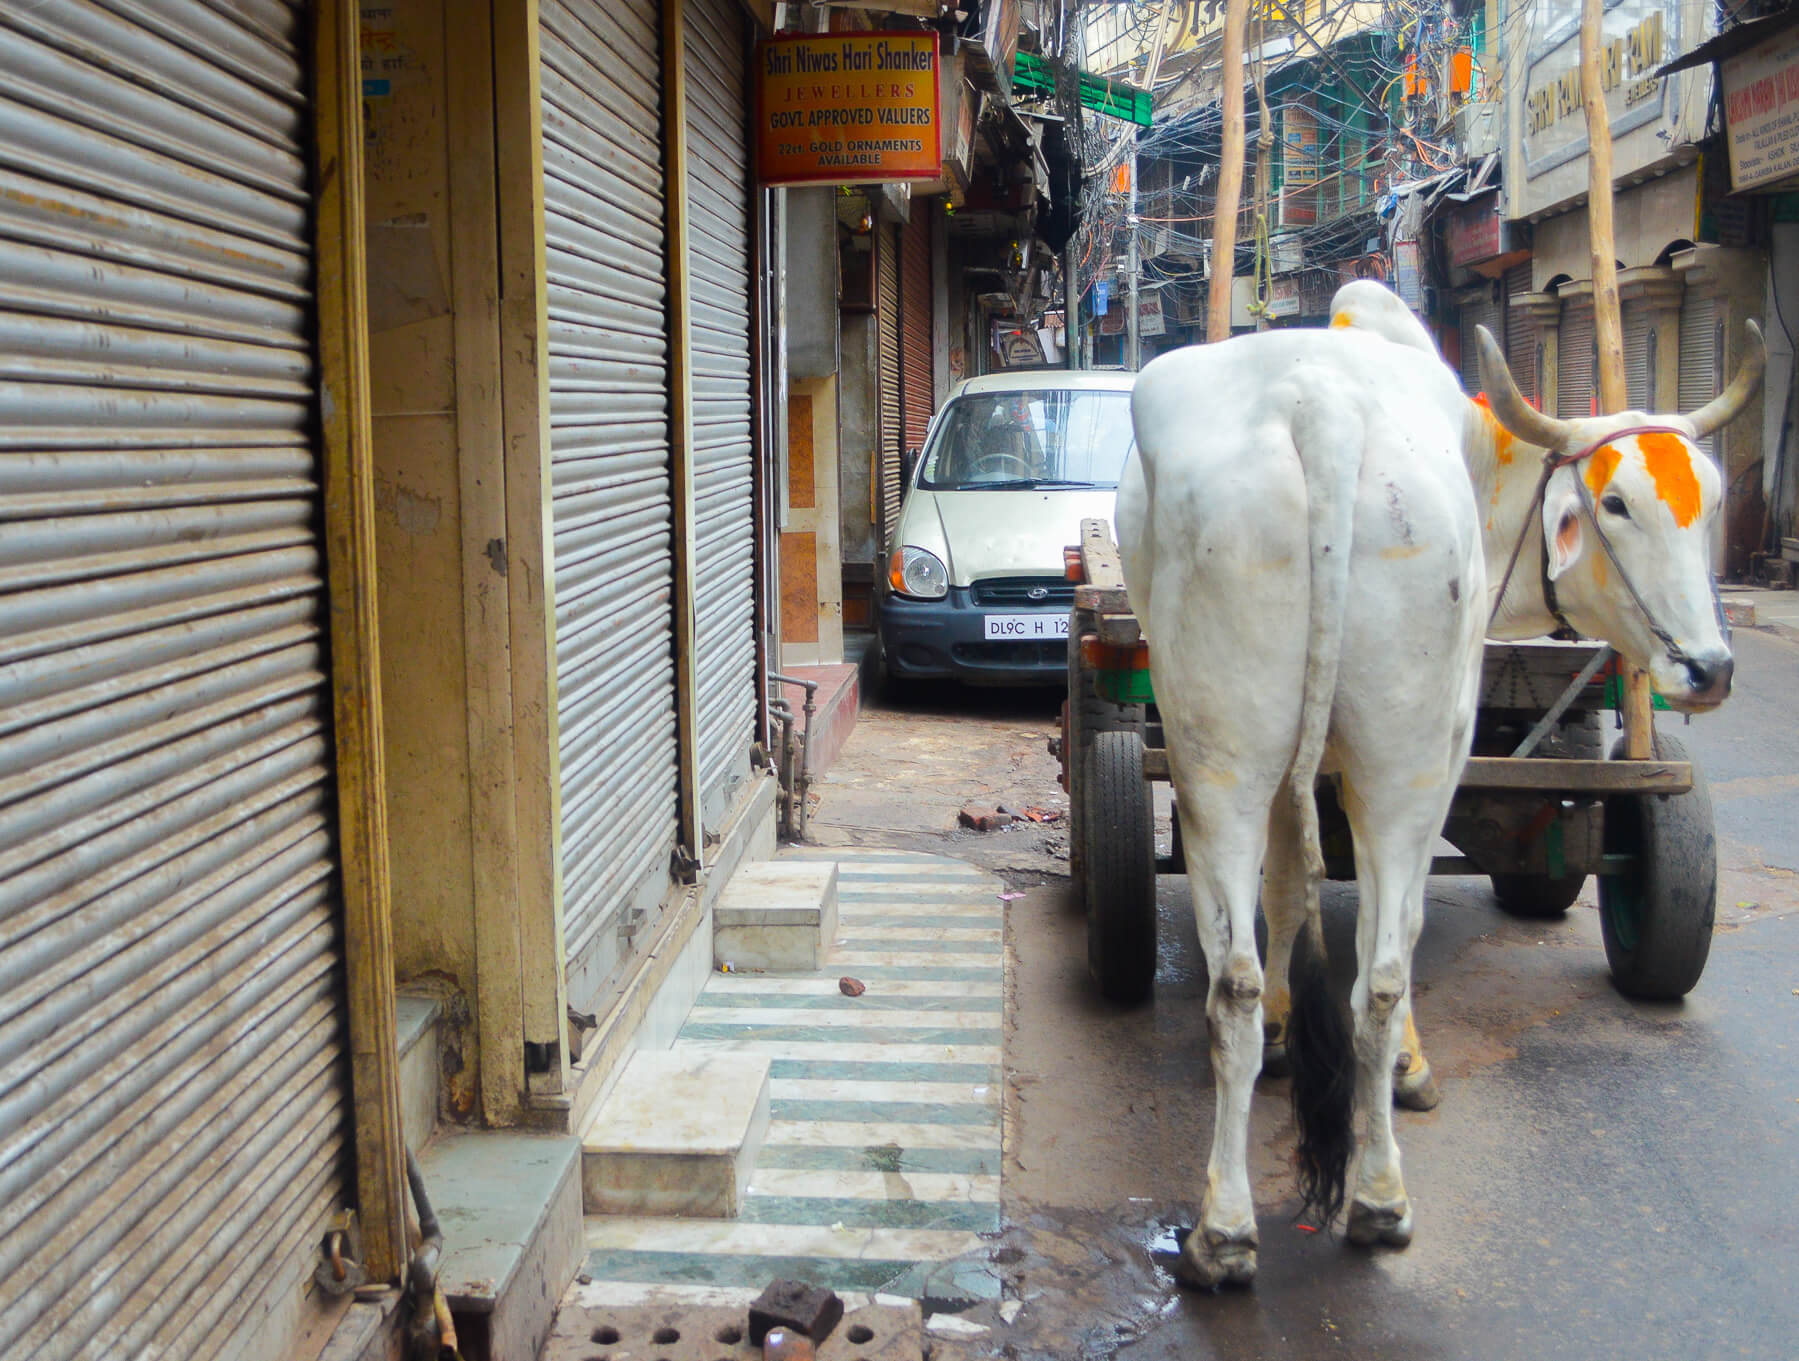 Sacred cow in street of Old Delhi